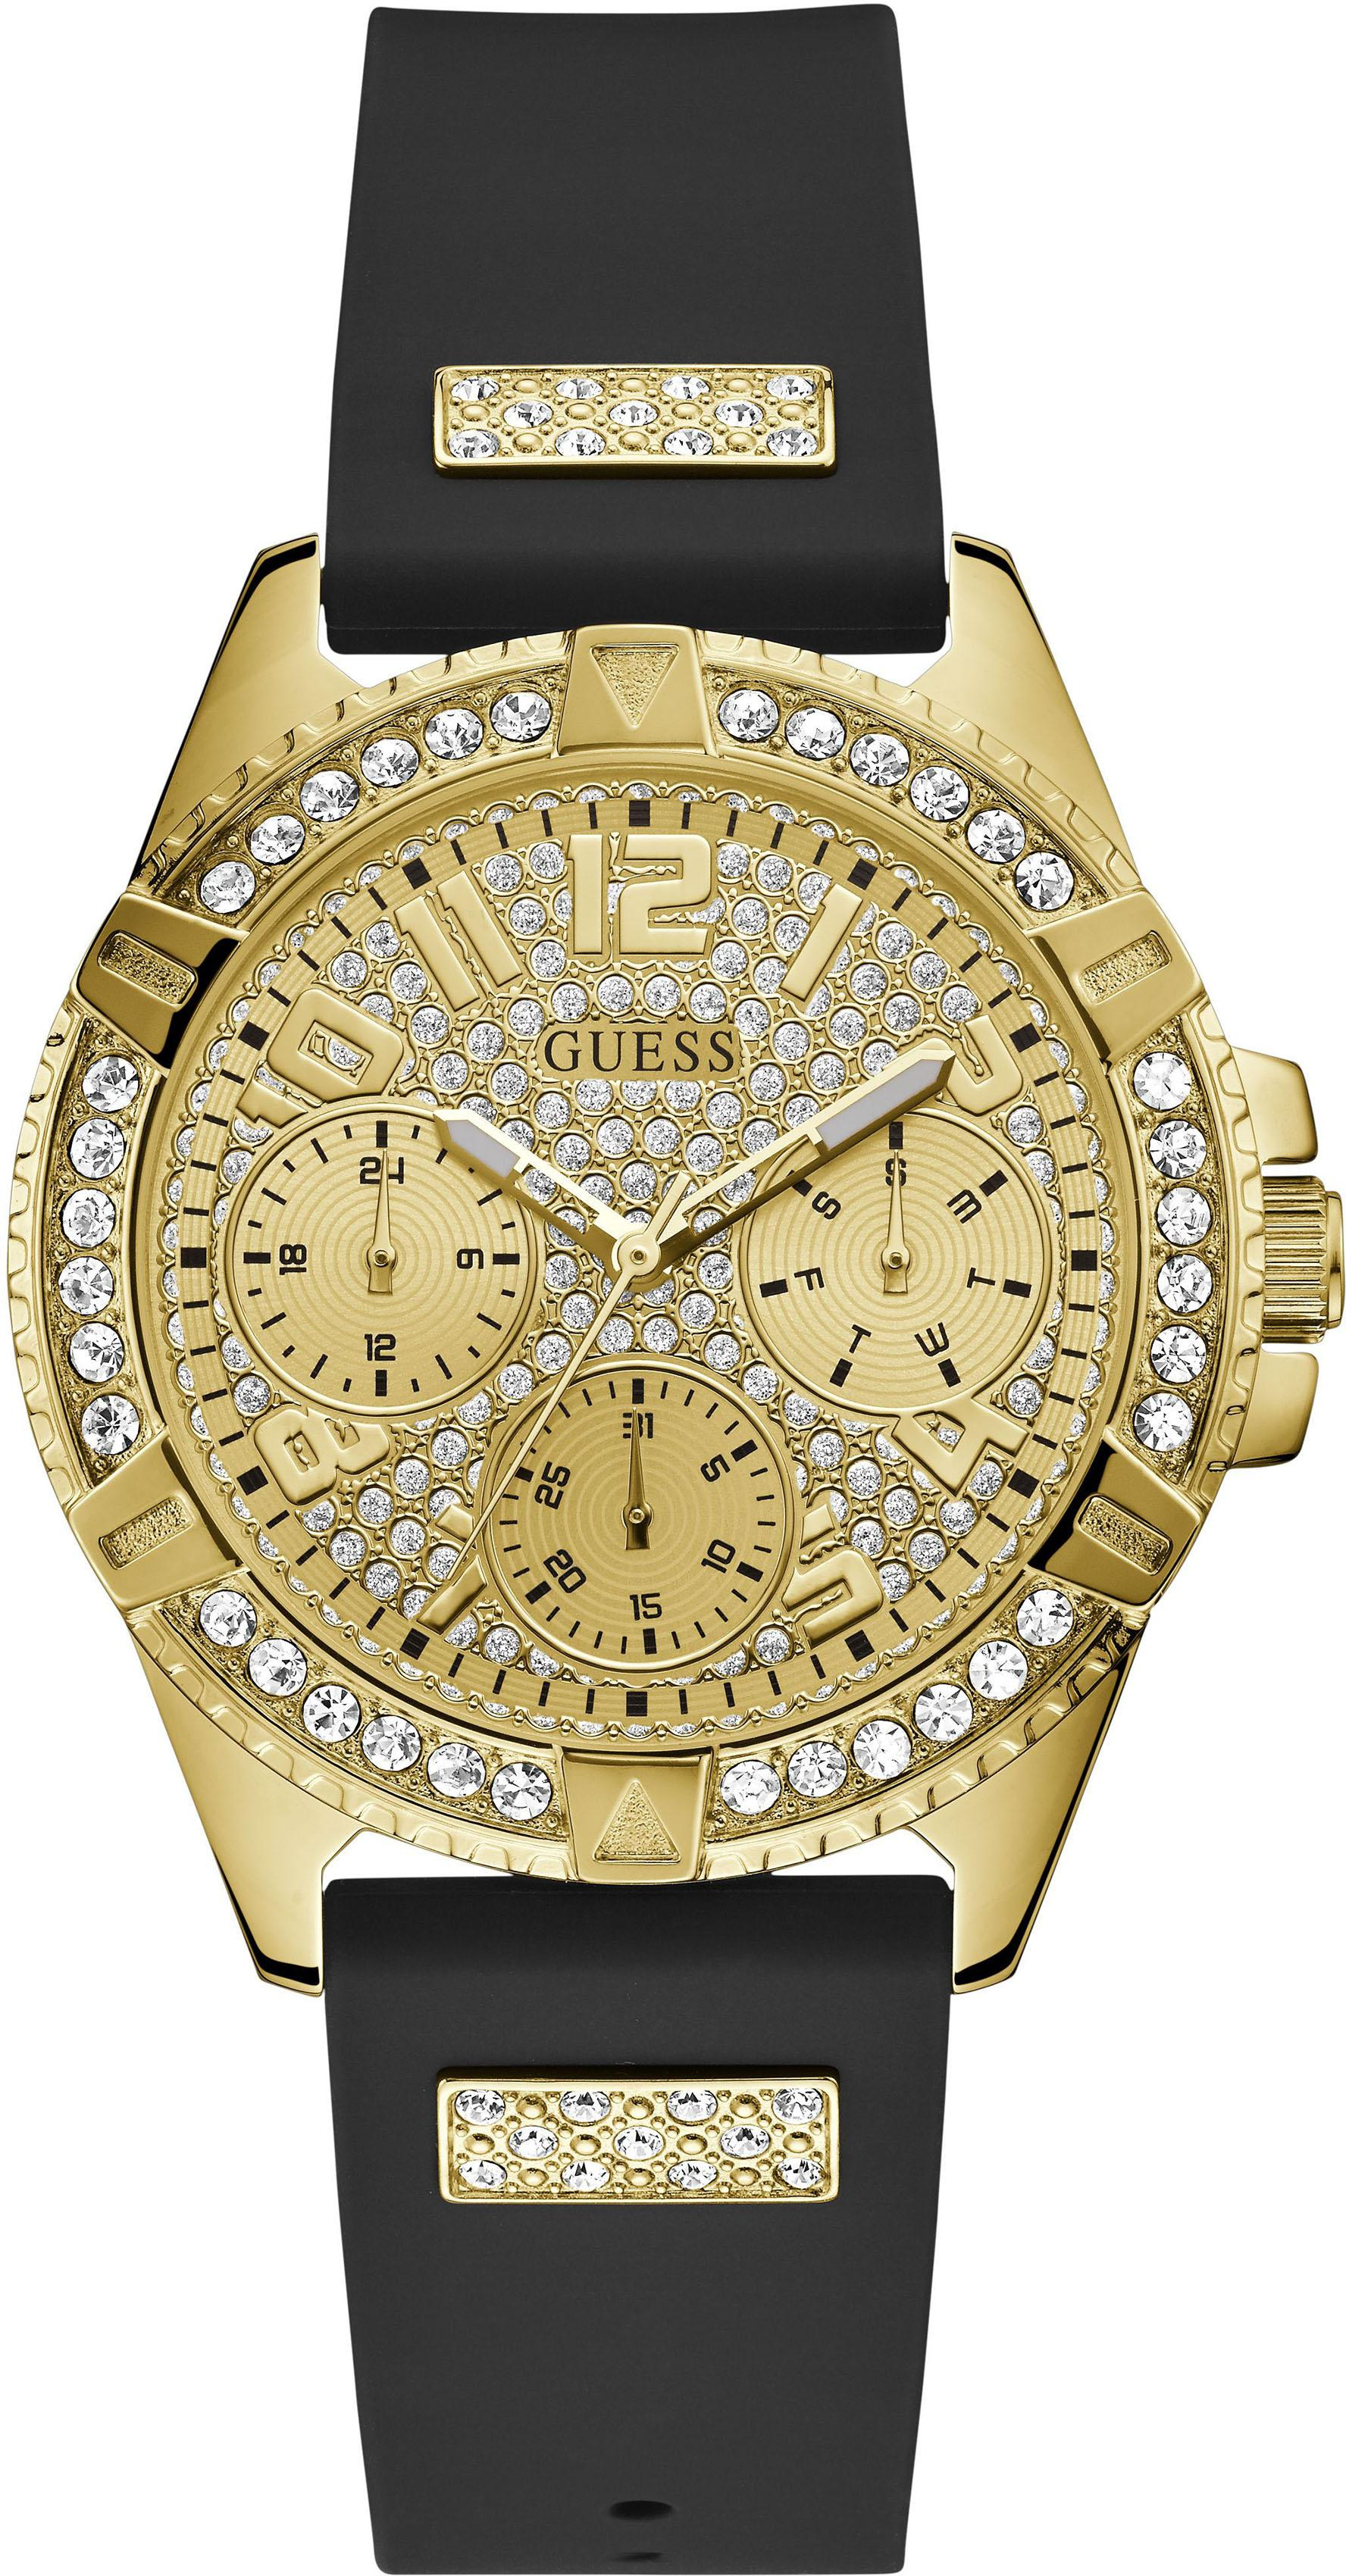 Guess Multifunktionsuhr LADY FRONTIER, W1160L1   Uhren > Multifunktionsuhren   Guess